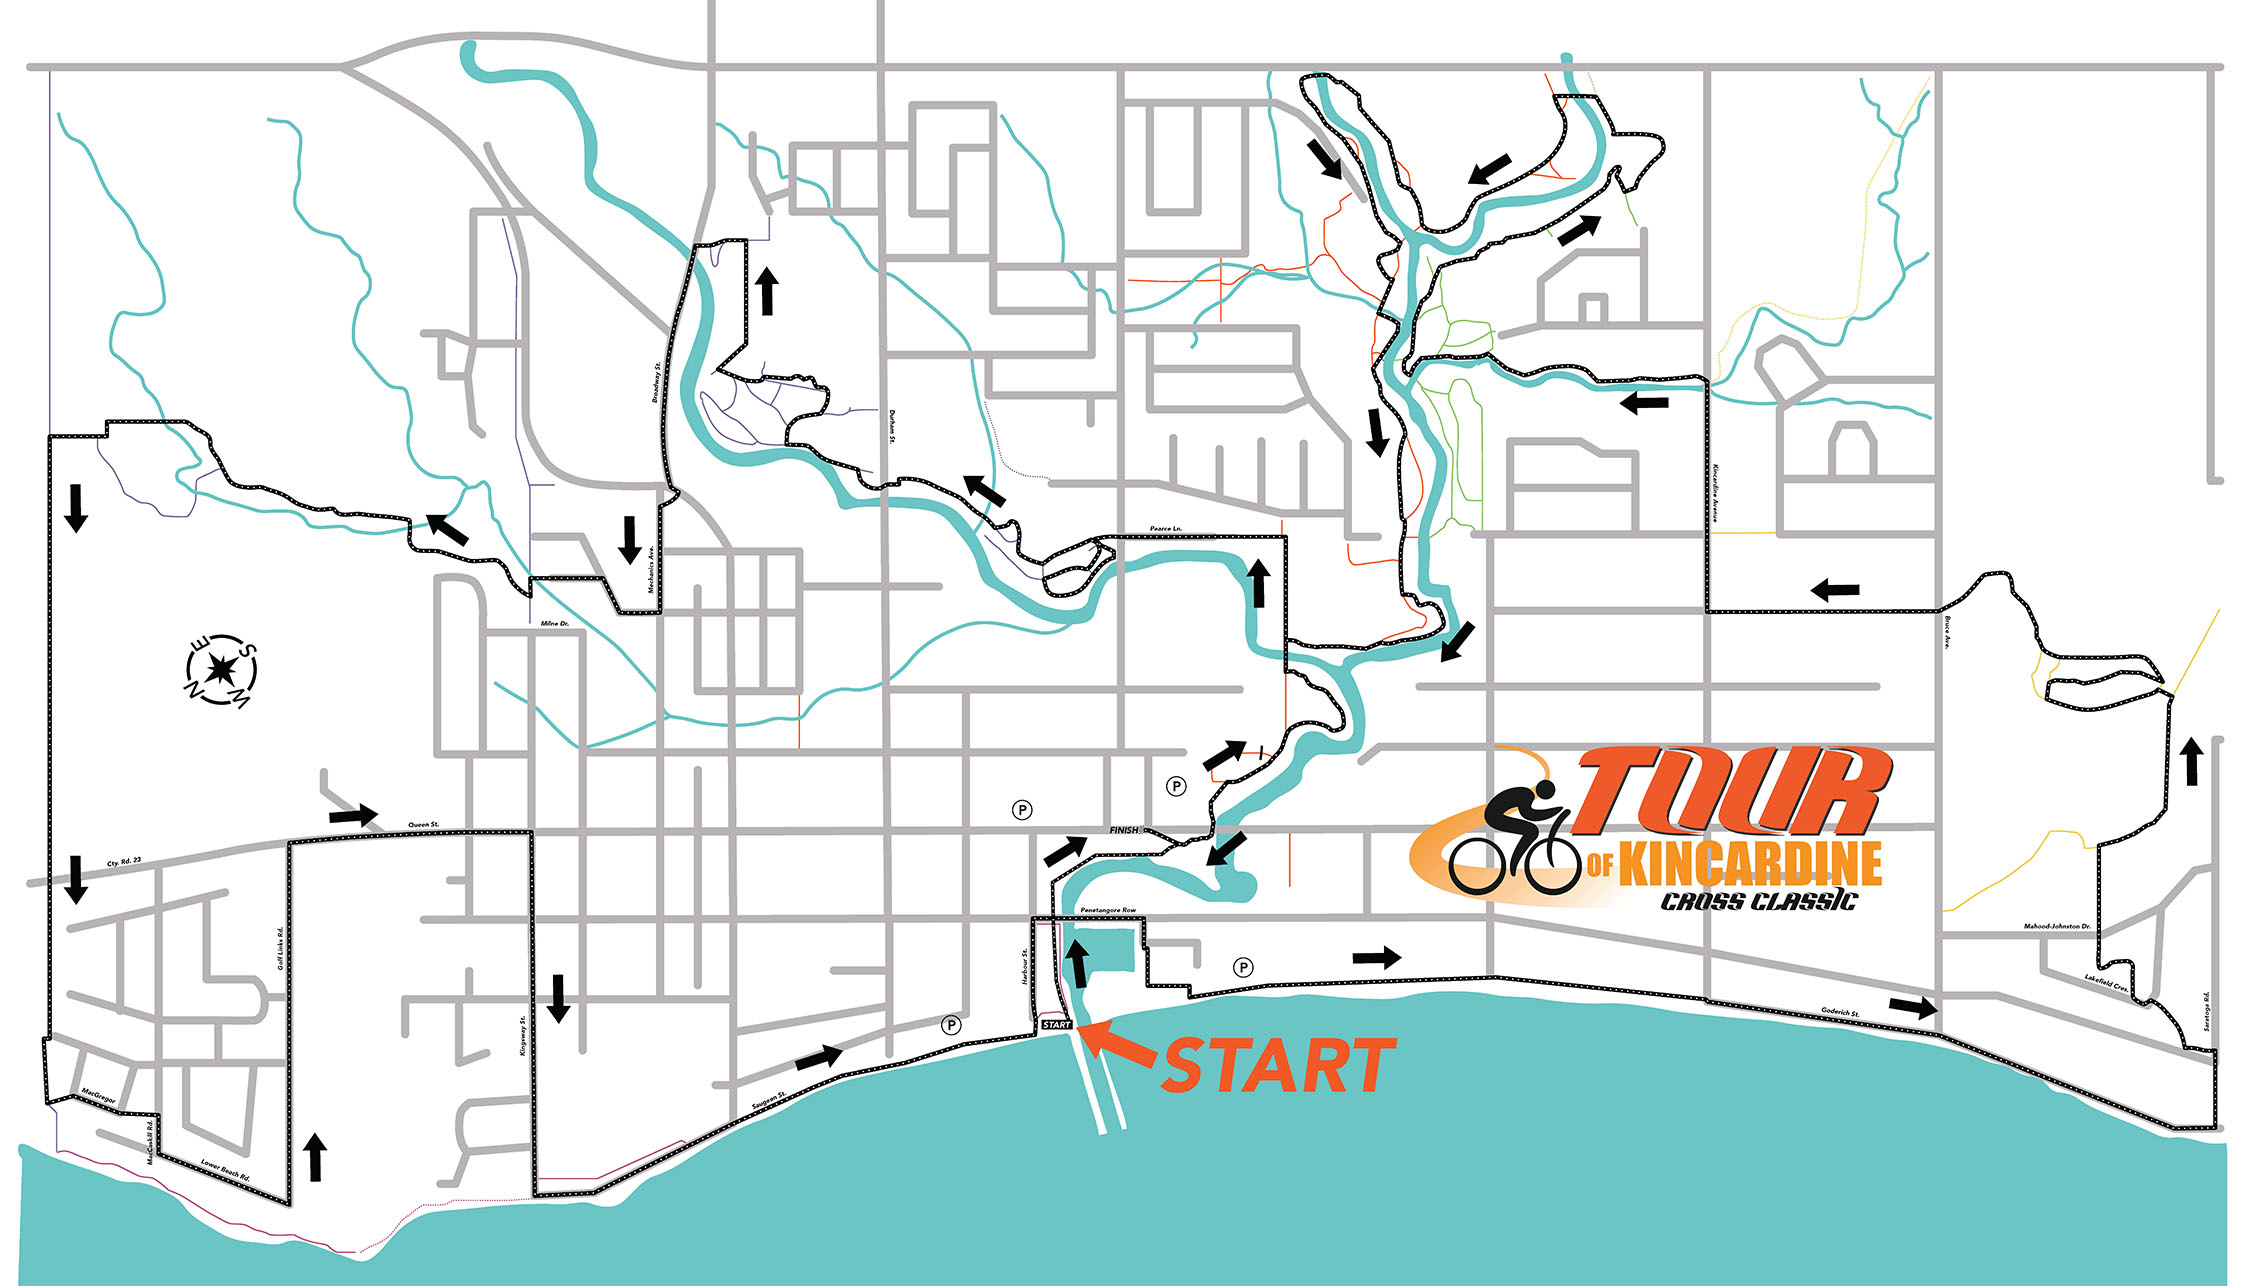 TourOfKincardine_Map_LargeArrows